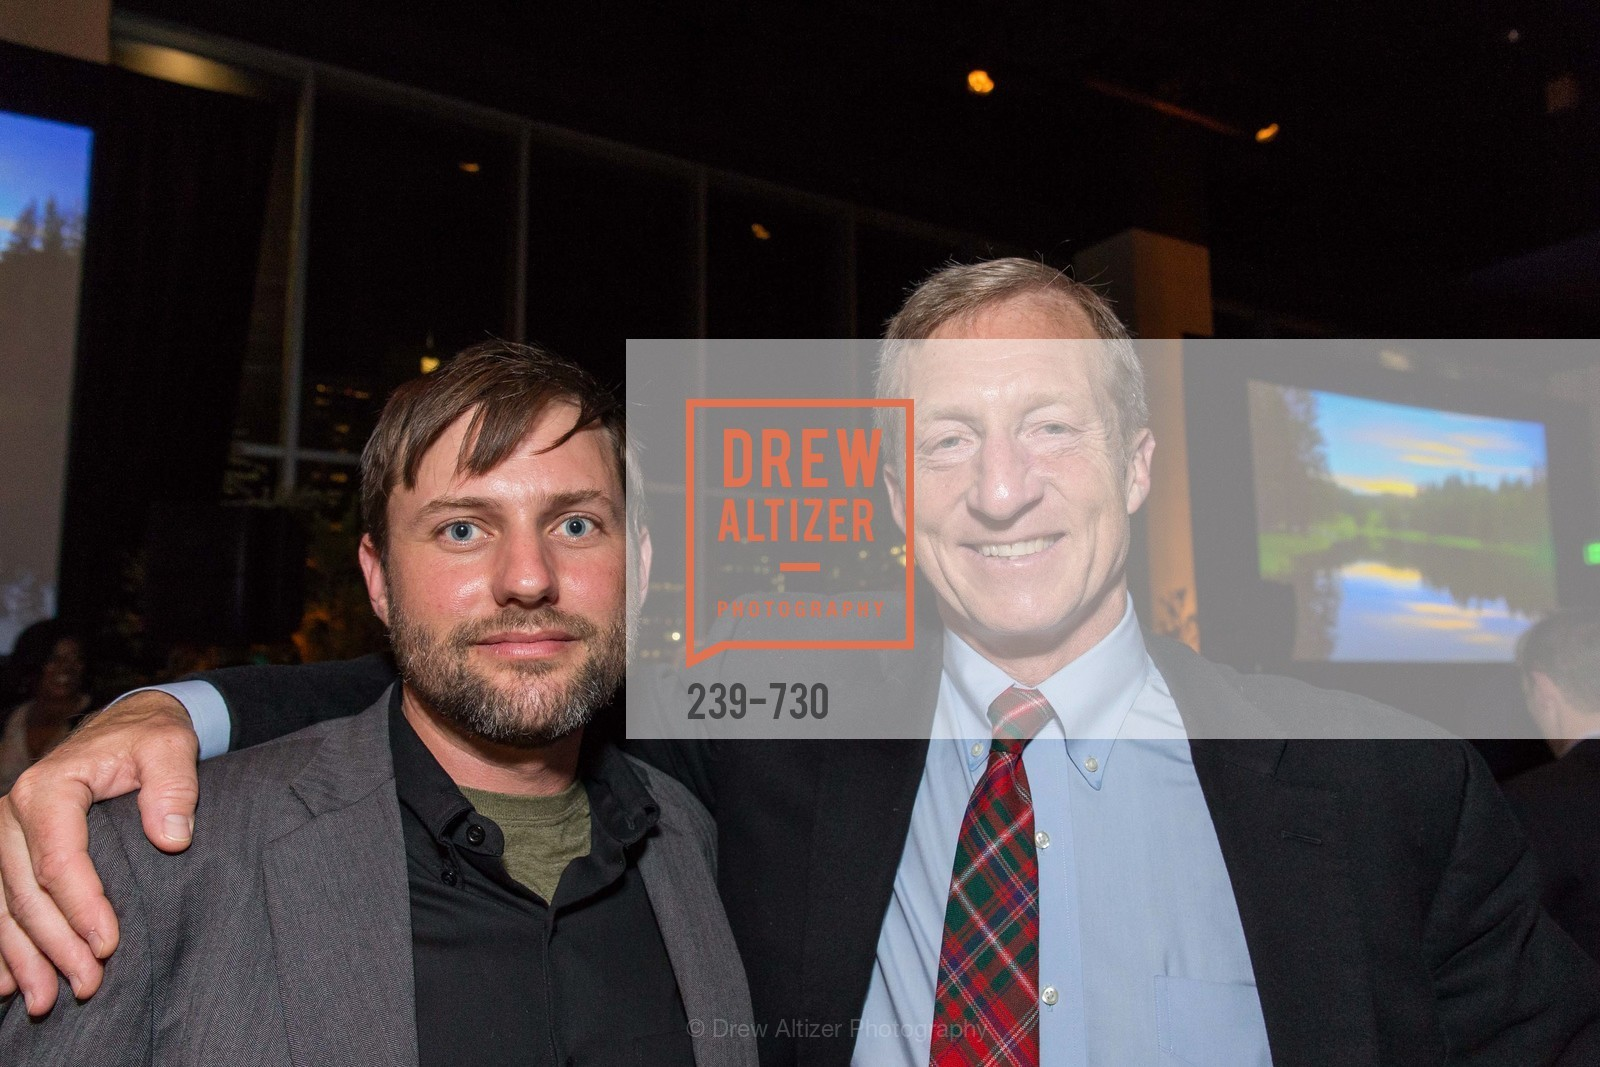 Jason Marks, Tom Steyer, 2015 SIERRA CLUB Trail Blazers Ball, US, May 16th, 2015,Drew Altizer, Drew Altizer Photography, full-service agency, private events, San Francisco photographer, photographer california